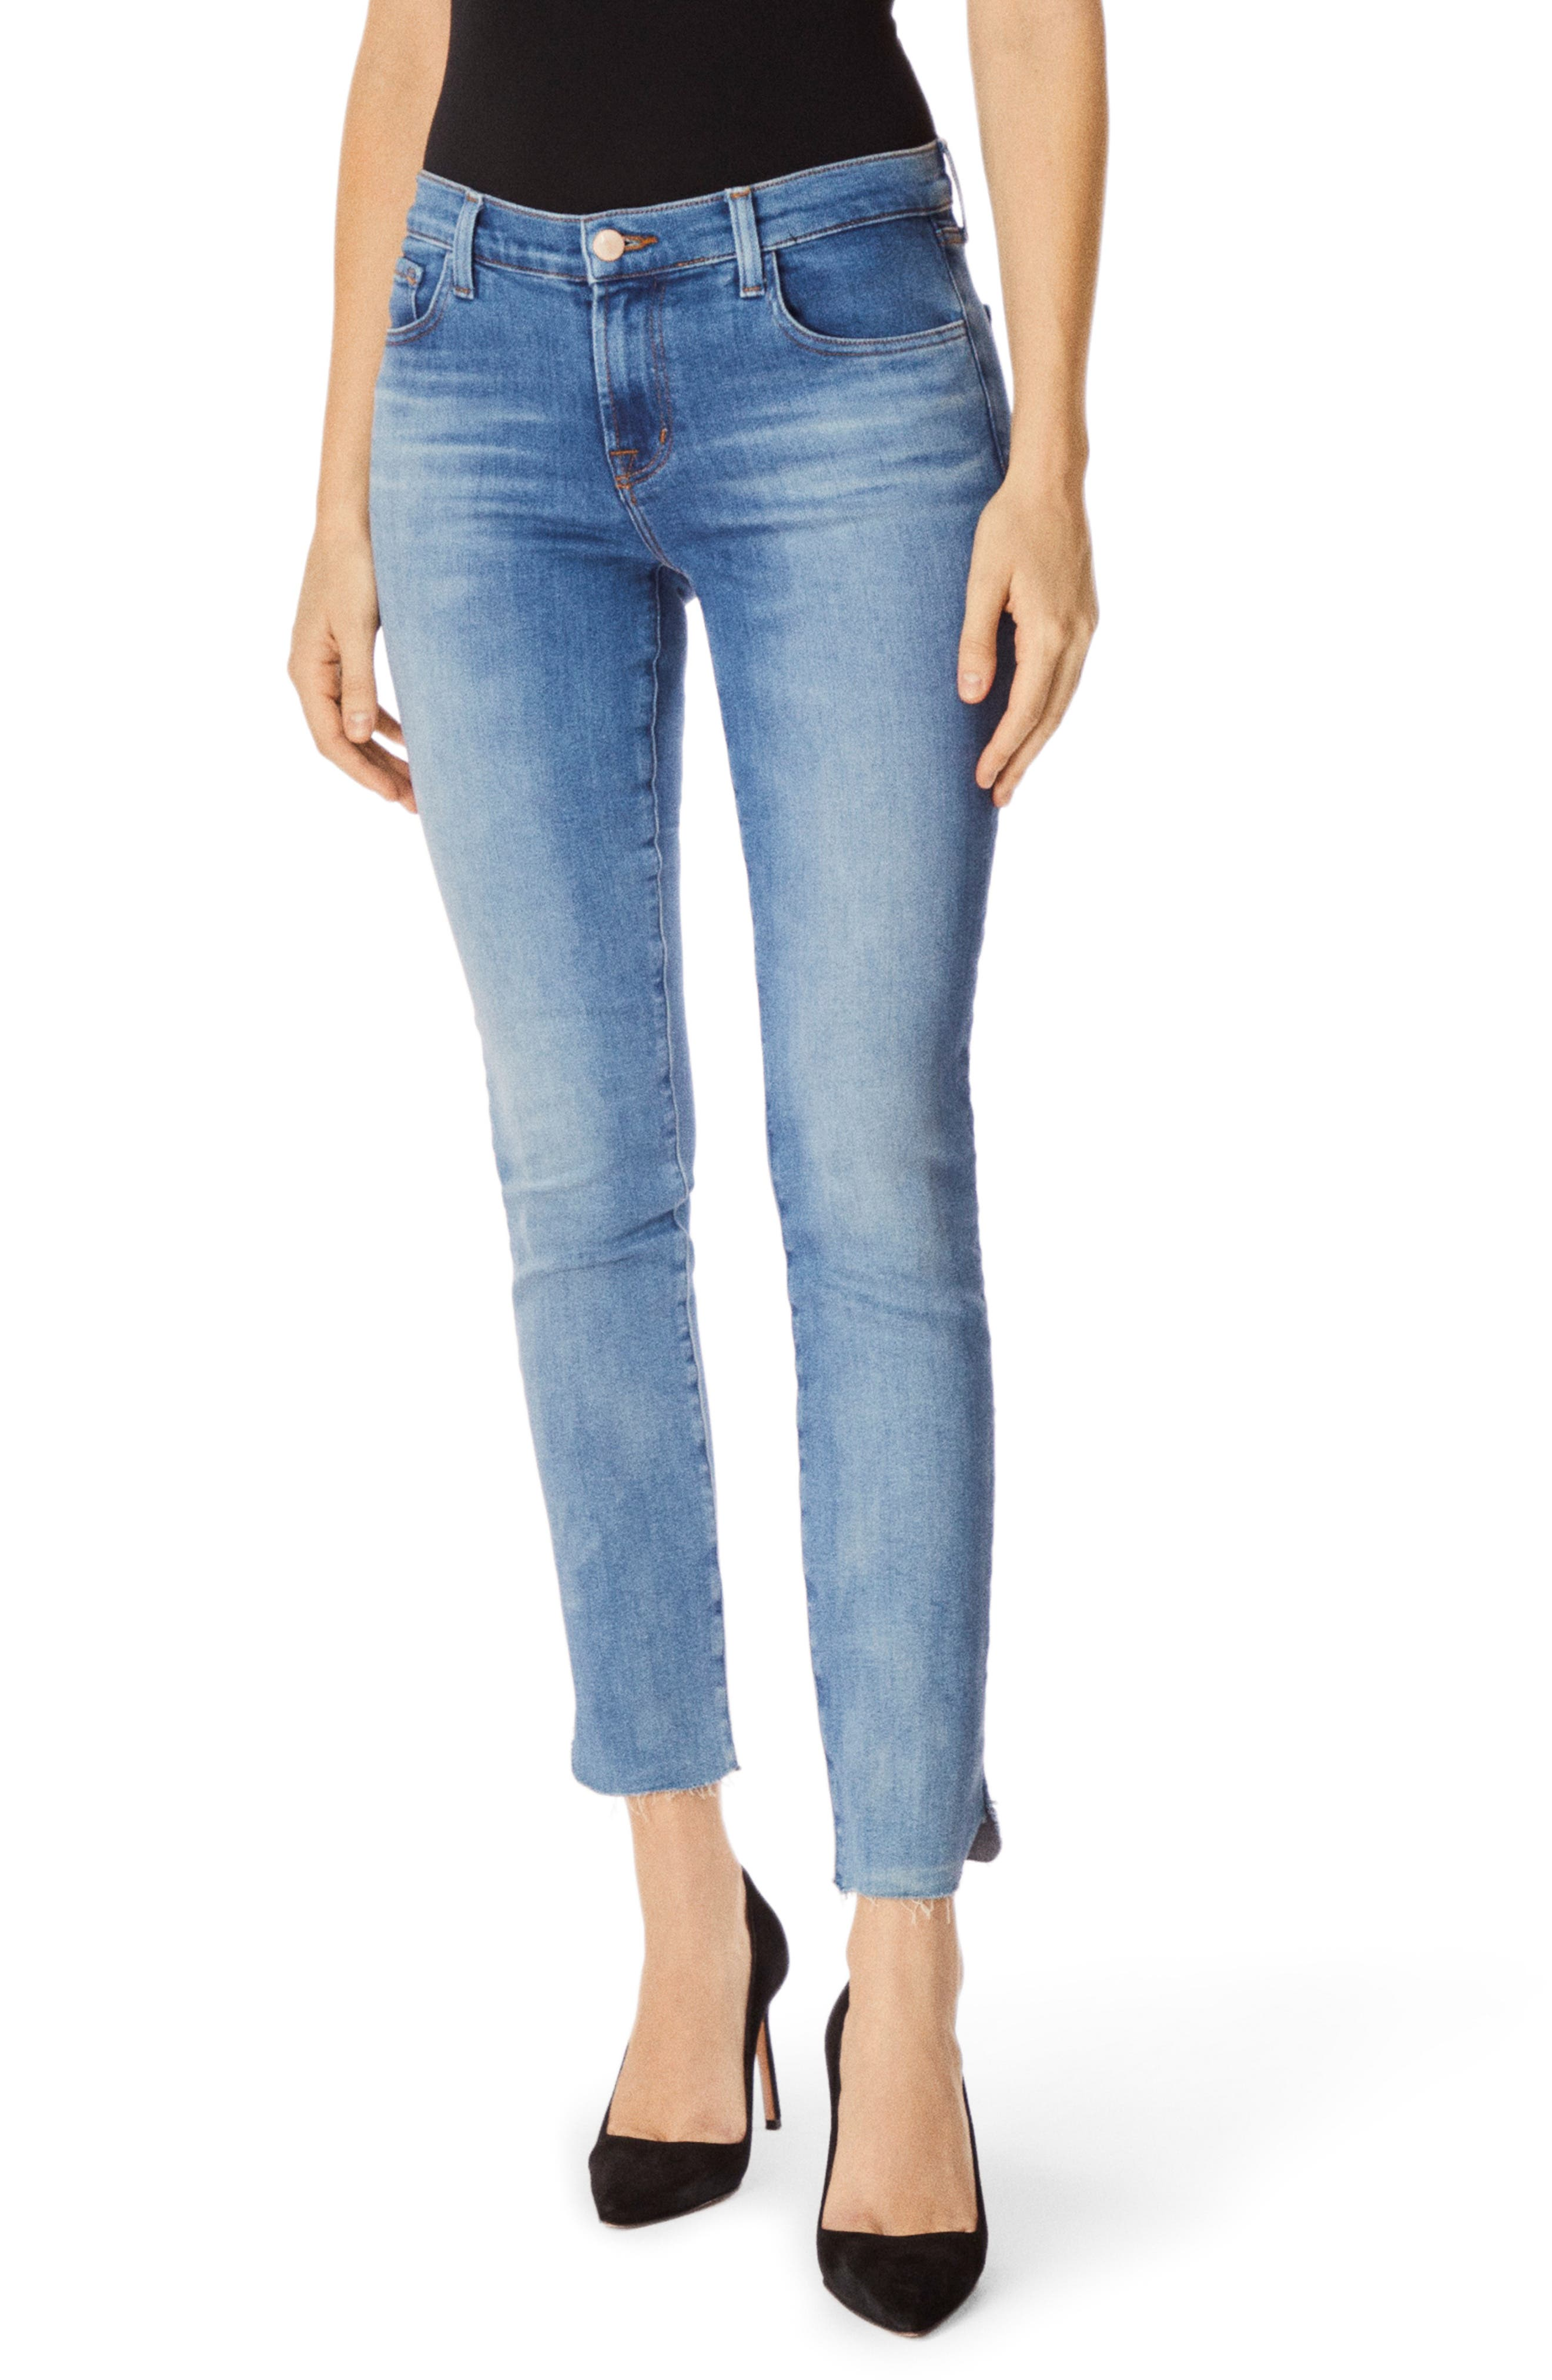 J BRAND 811 Raw Hem Ankle Skinny Jeans, Main, color, 400